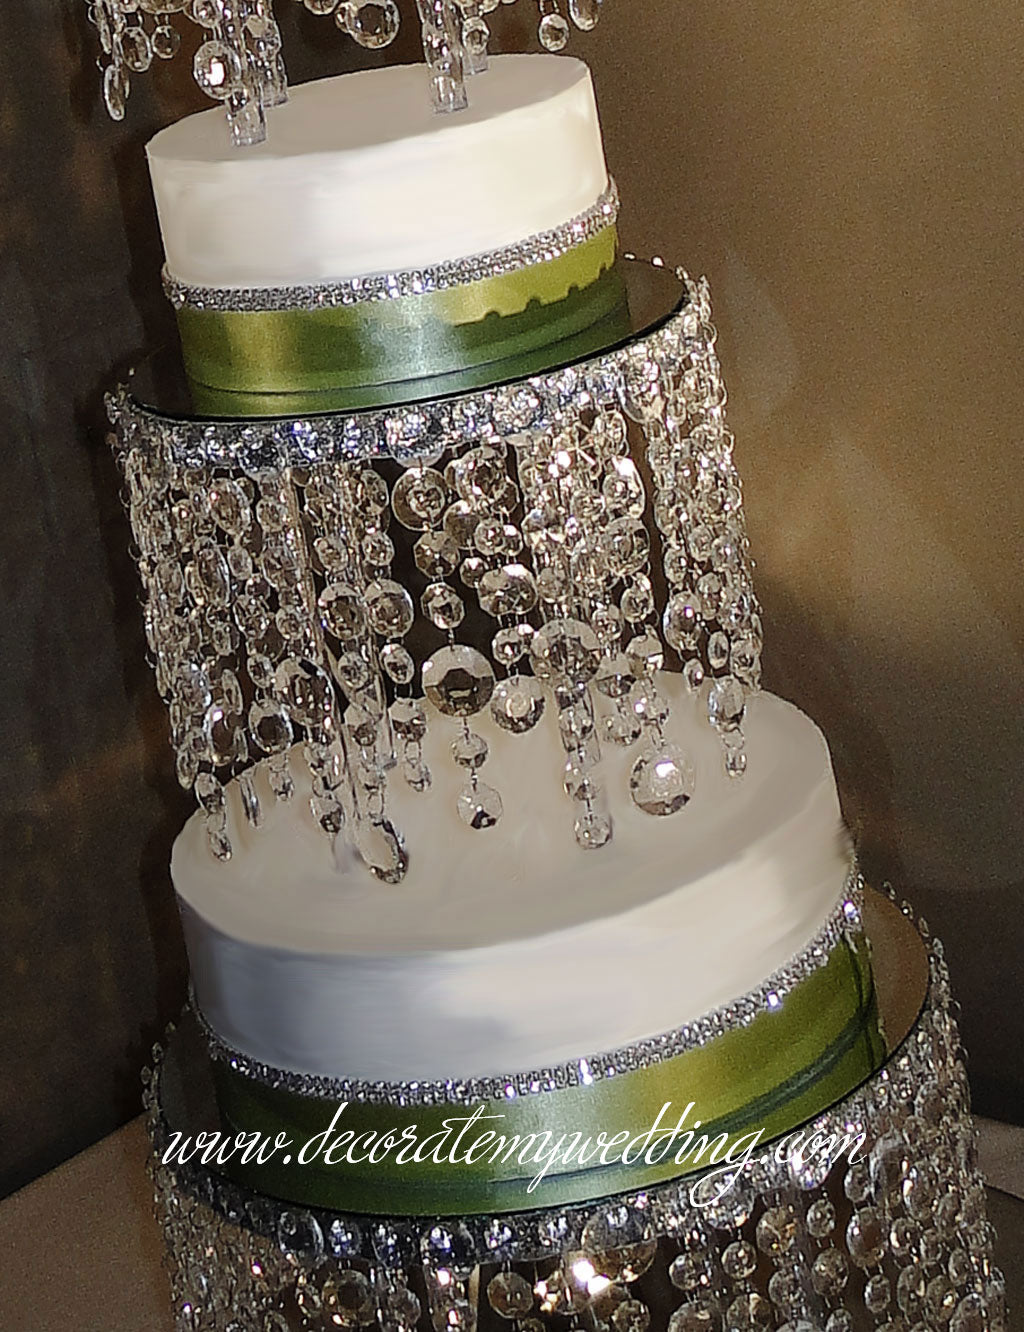 This cake stand with its circle hanging crystals has a very contemporary presentation.